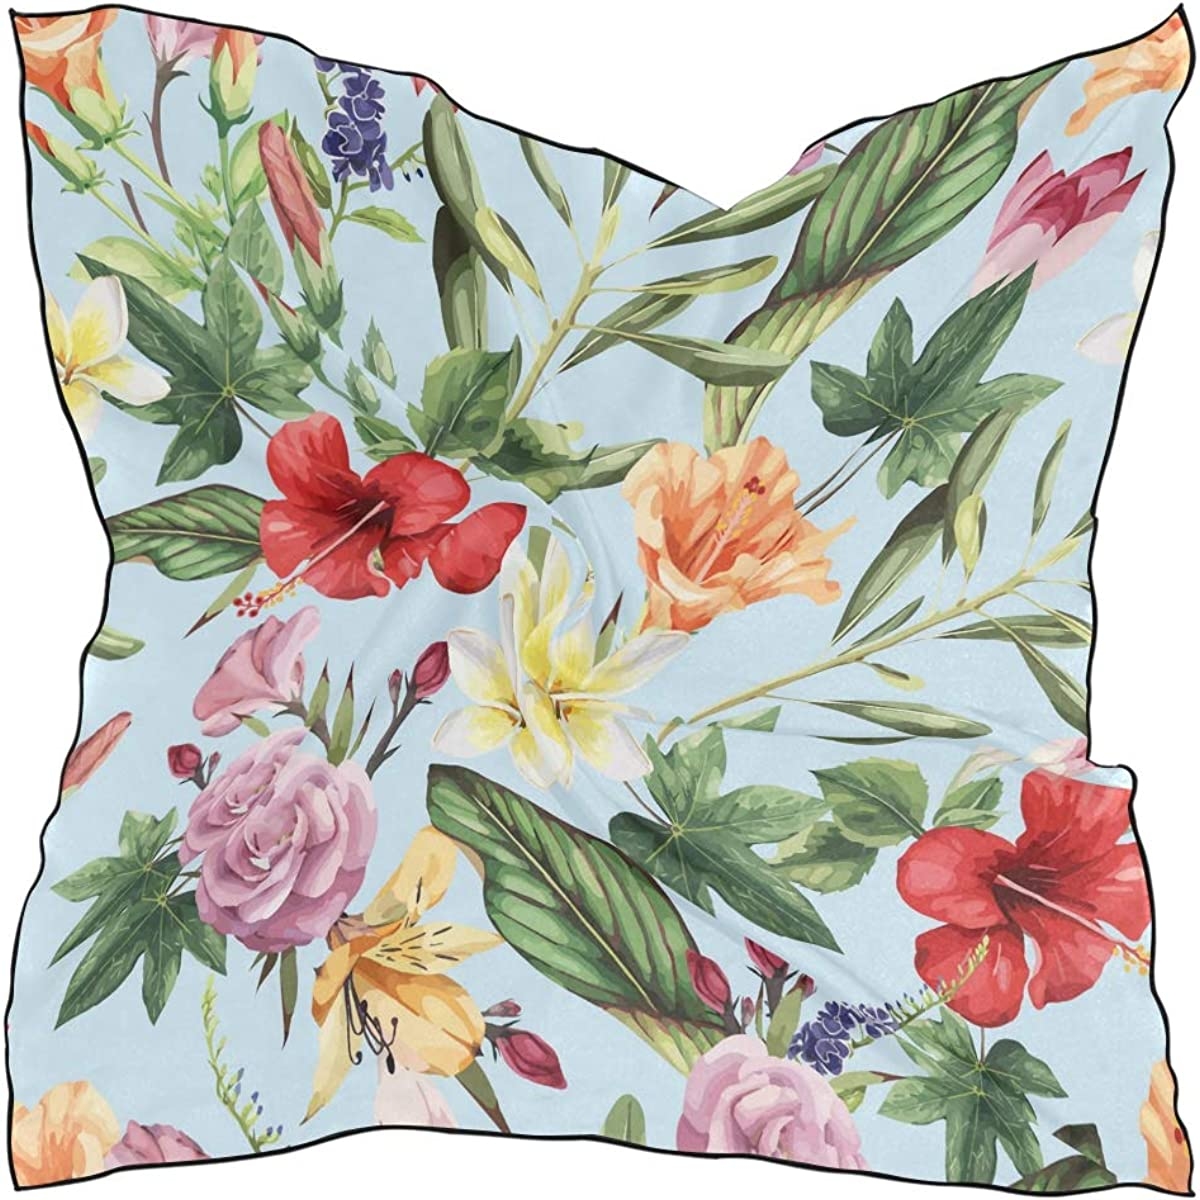 XLING Fashion Square Scarf Tropical Floral Flower Leaves Lightweight Sunscreen Scarves Muffler Hair Wrap Headscarf Neckerchief for Women Men